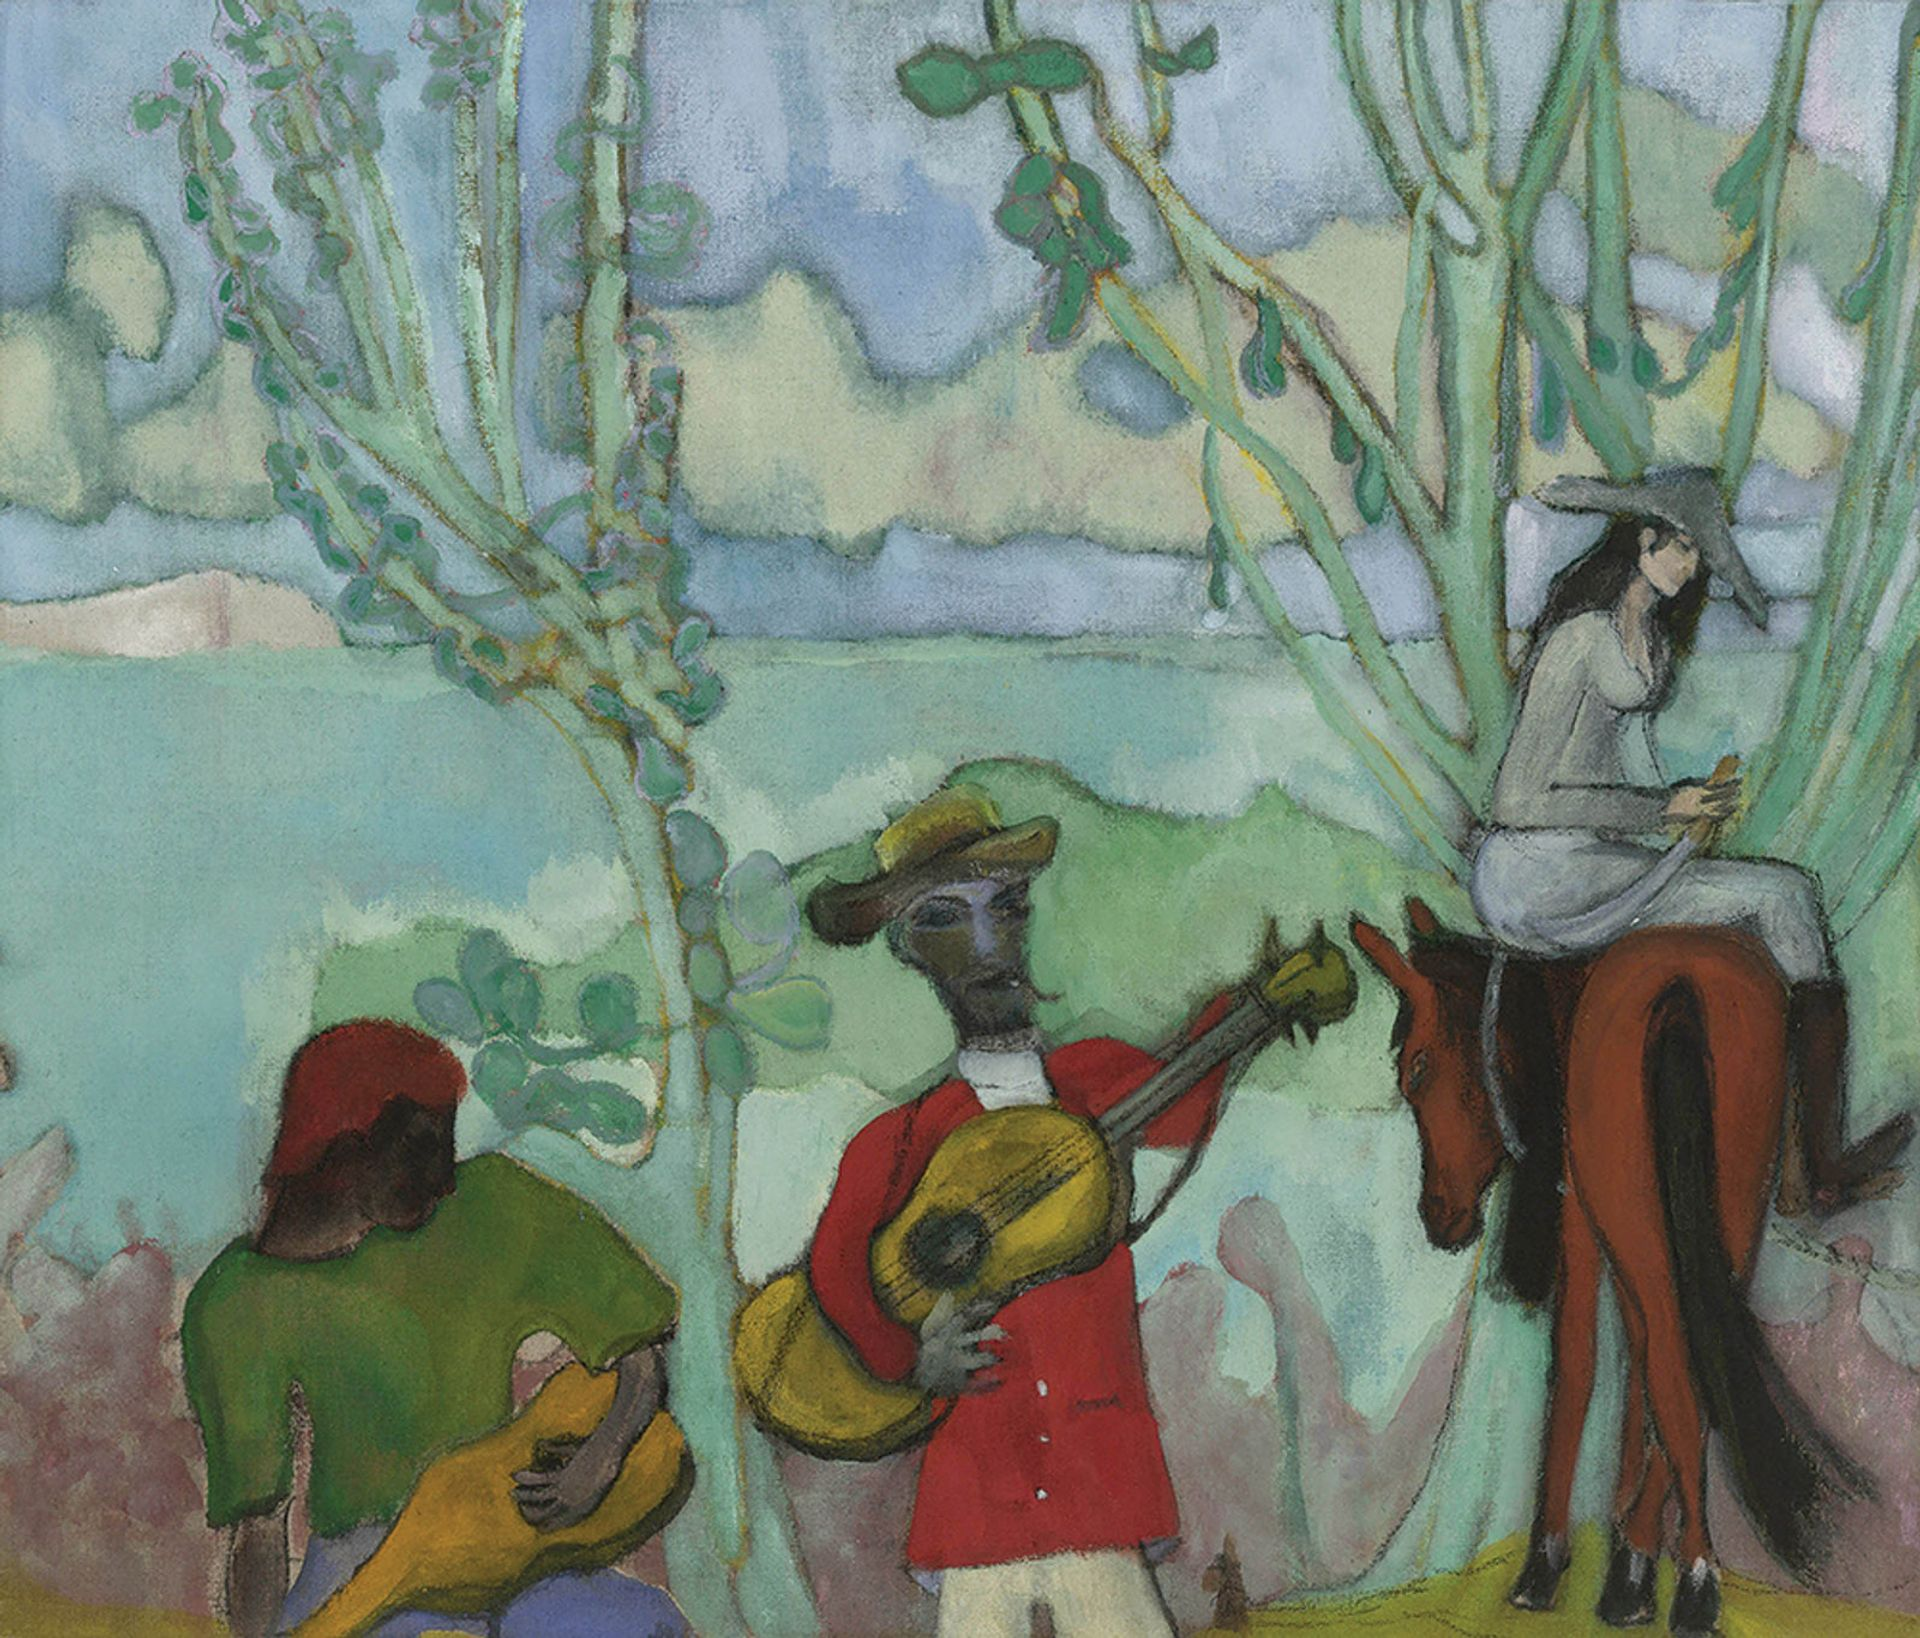 Peter Doig's Music (2 Trees, 2019) © Peter Doig. All Rights Reserved, DACS 2019. Courtesy Michael Werner Gallery, New York and London.